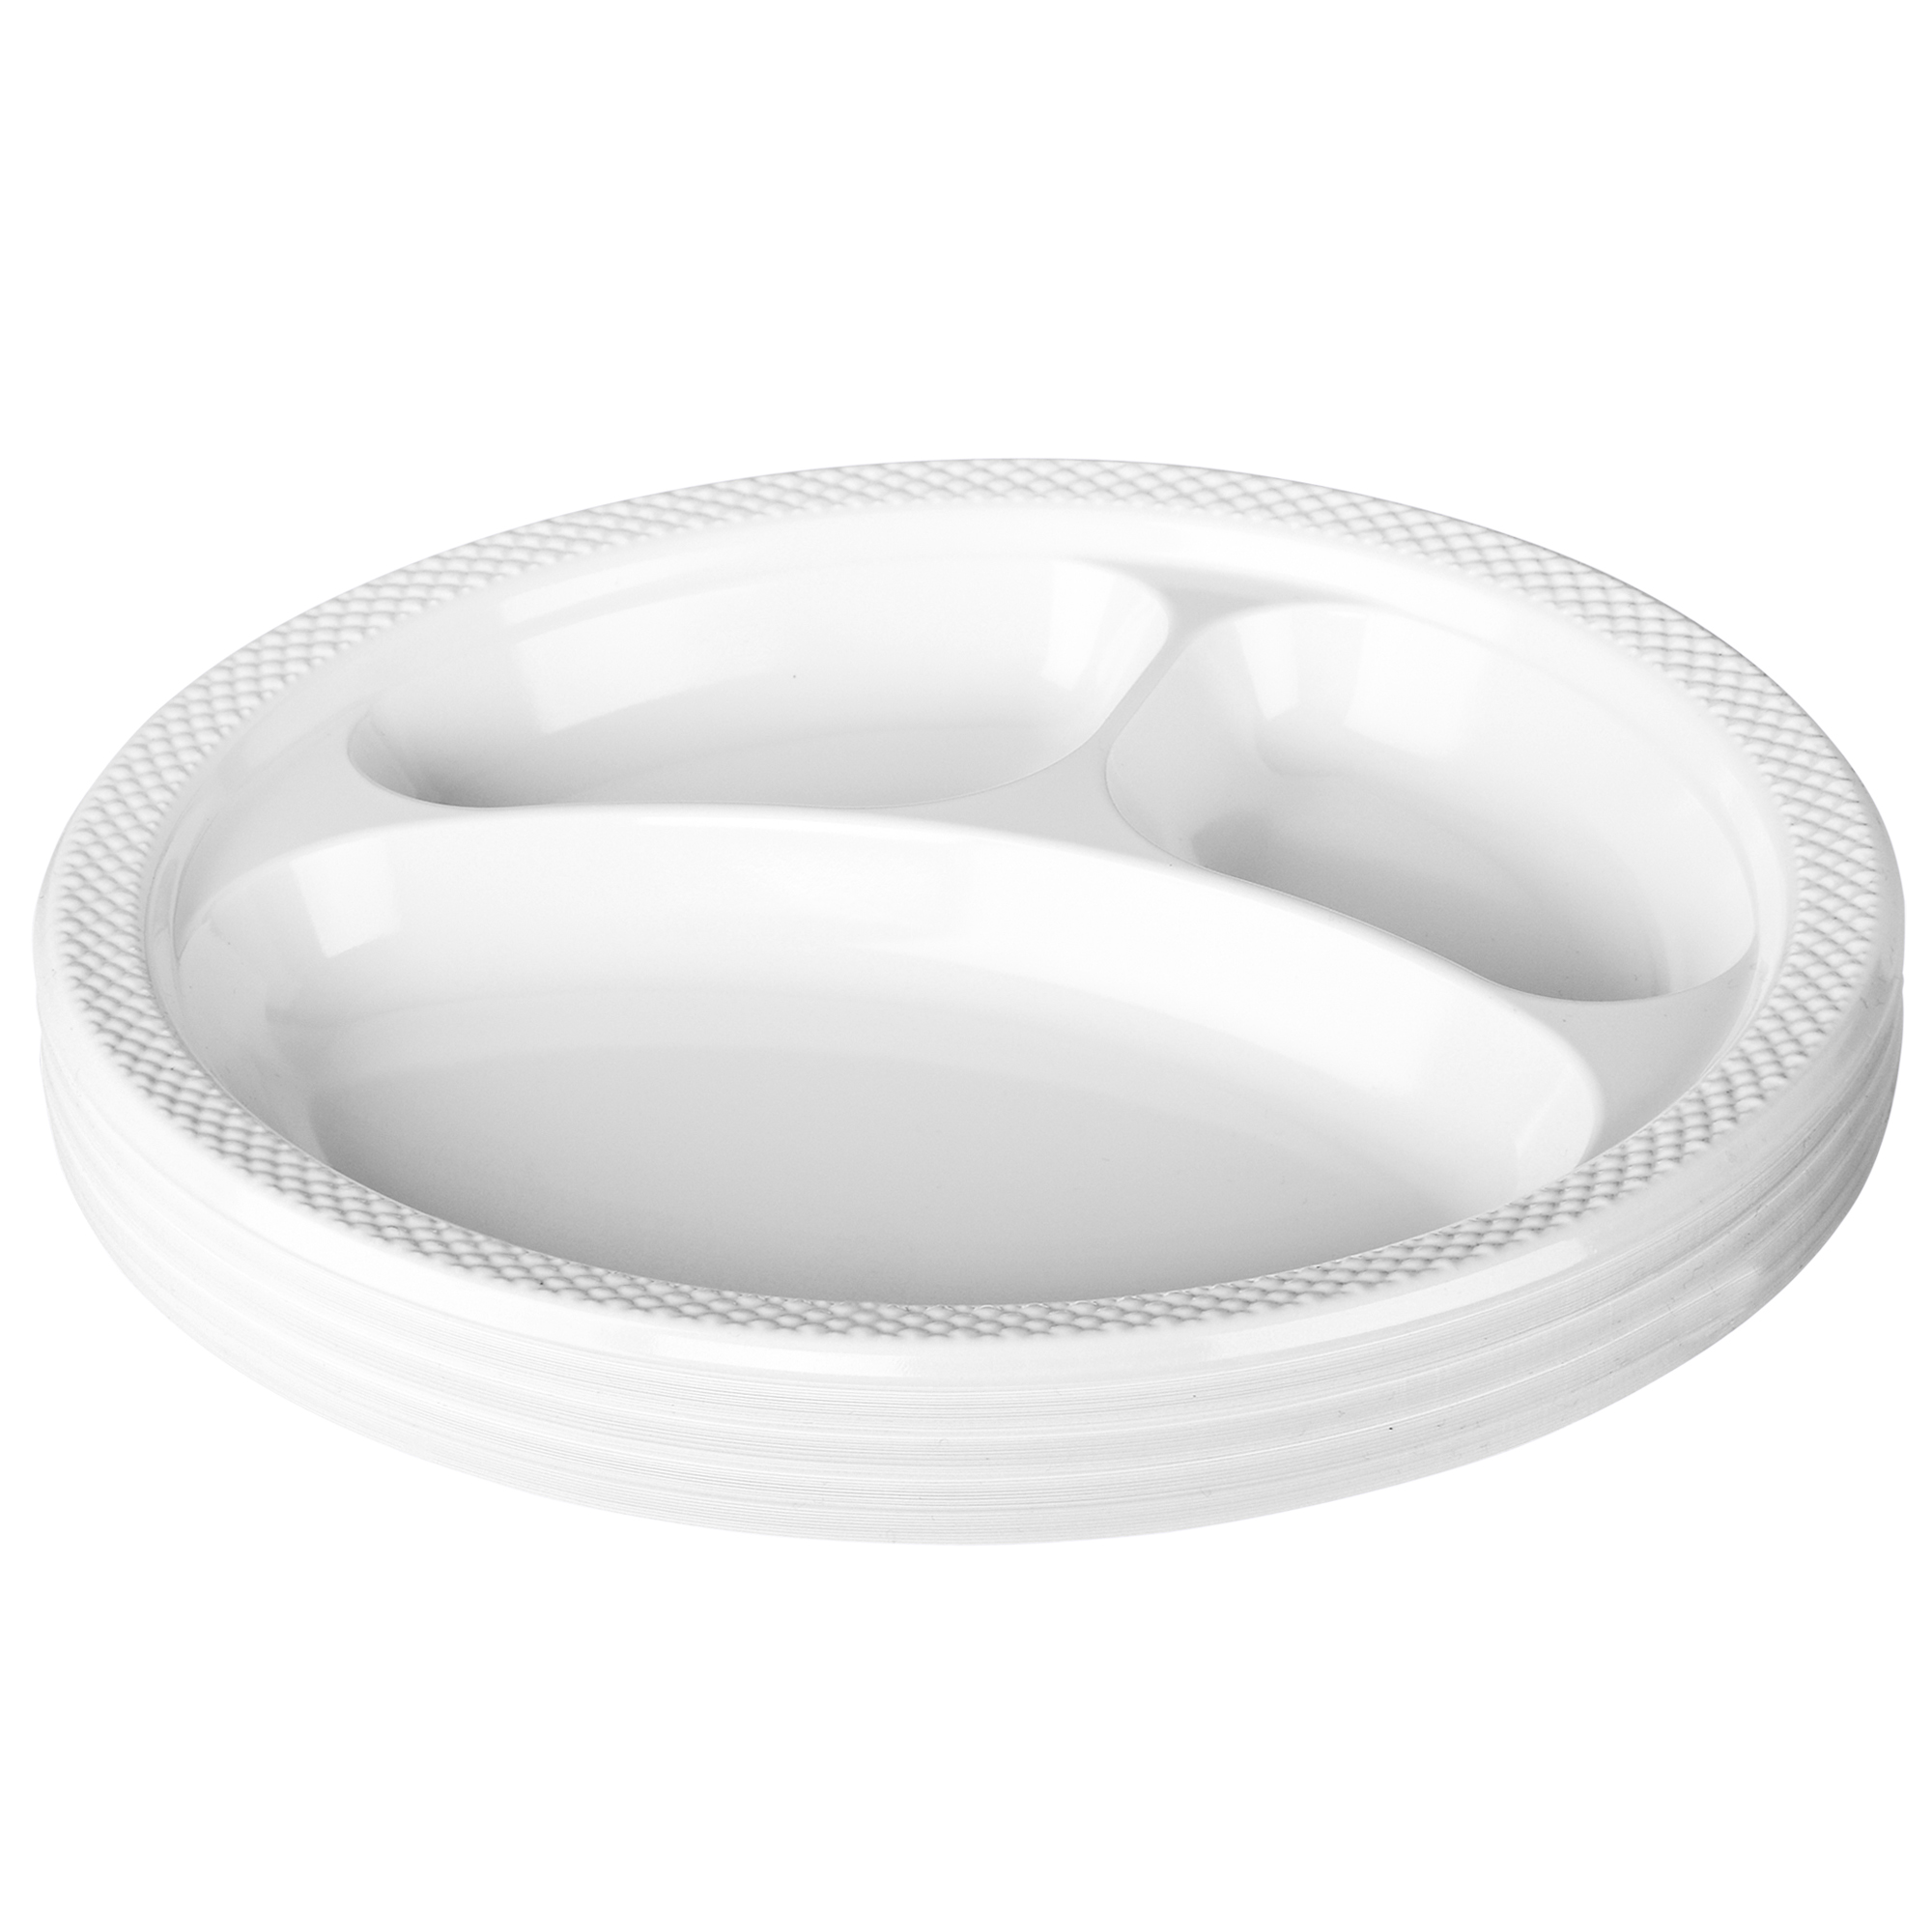 500 x 10 inch White 3 Compartment Round Plastic Disposable BBQ  Party Plate Party Supplies